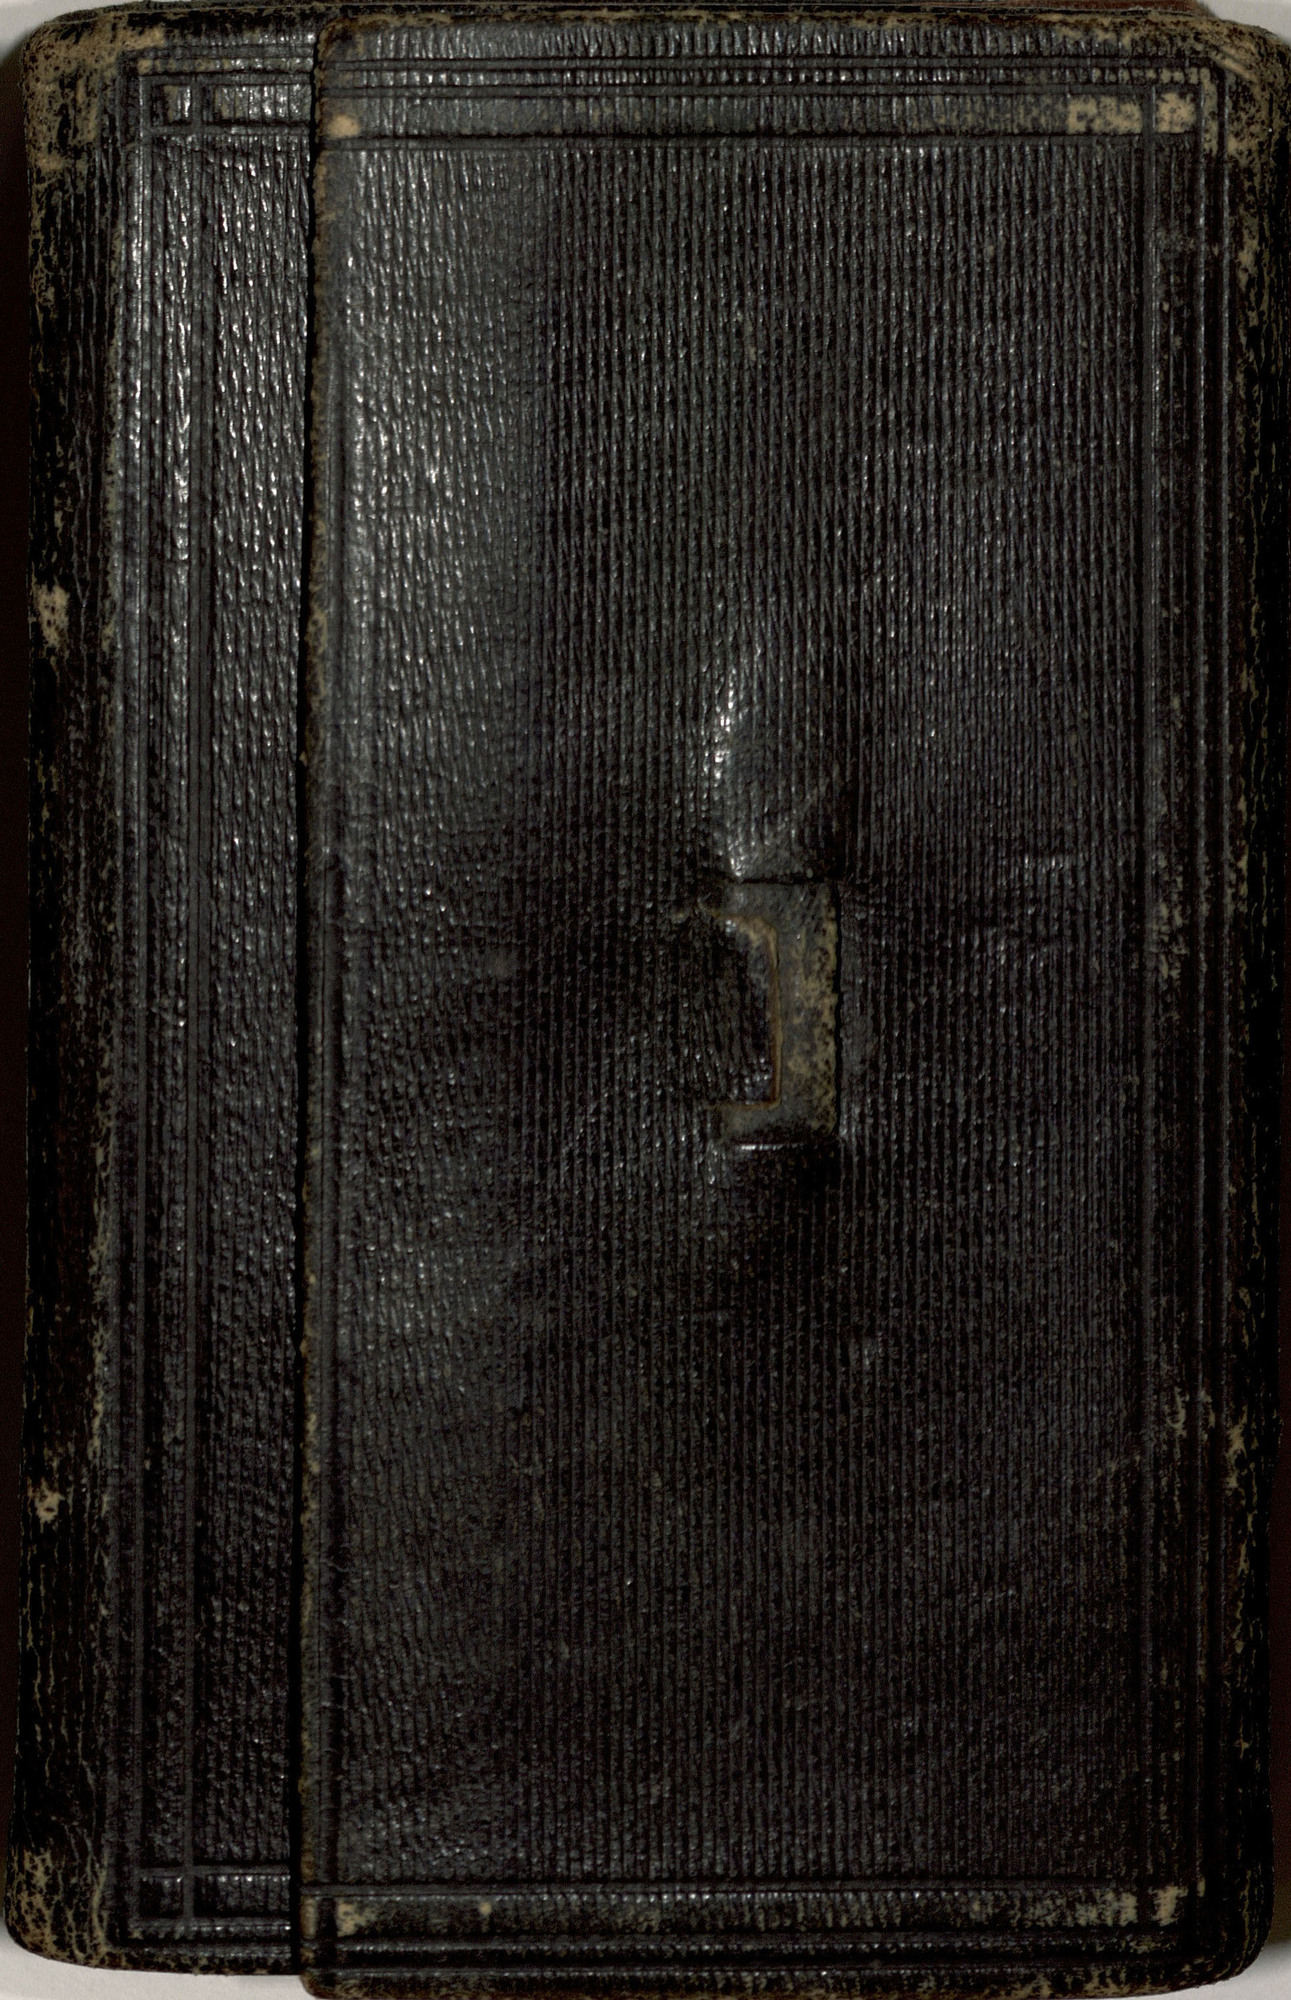 Ms2009-129_BabcockWillis_Diary_1864_frontcover.jpg